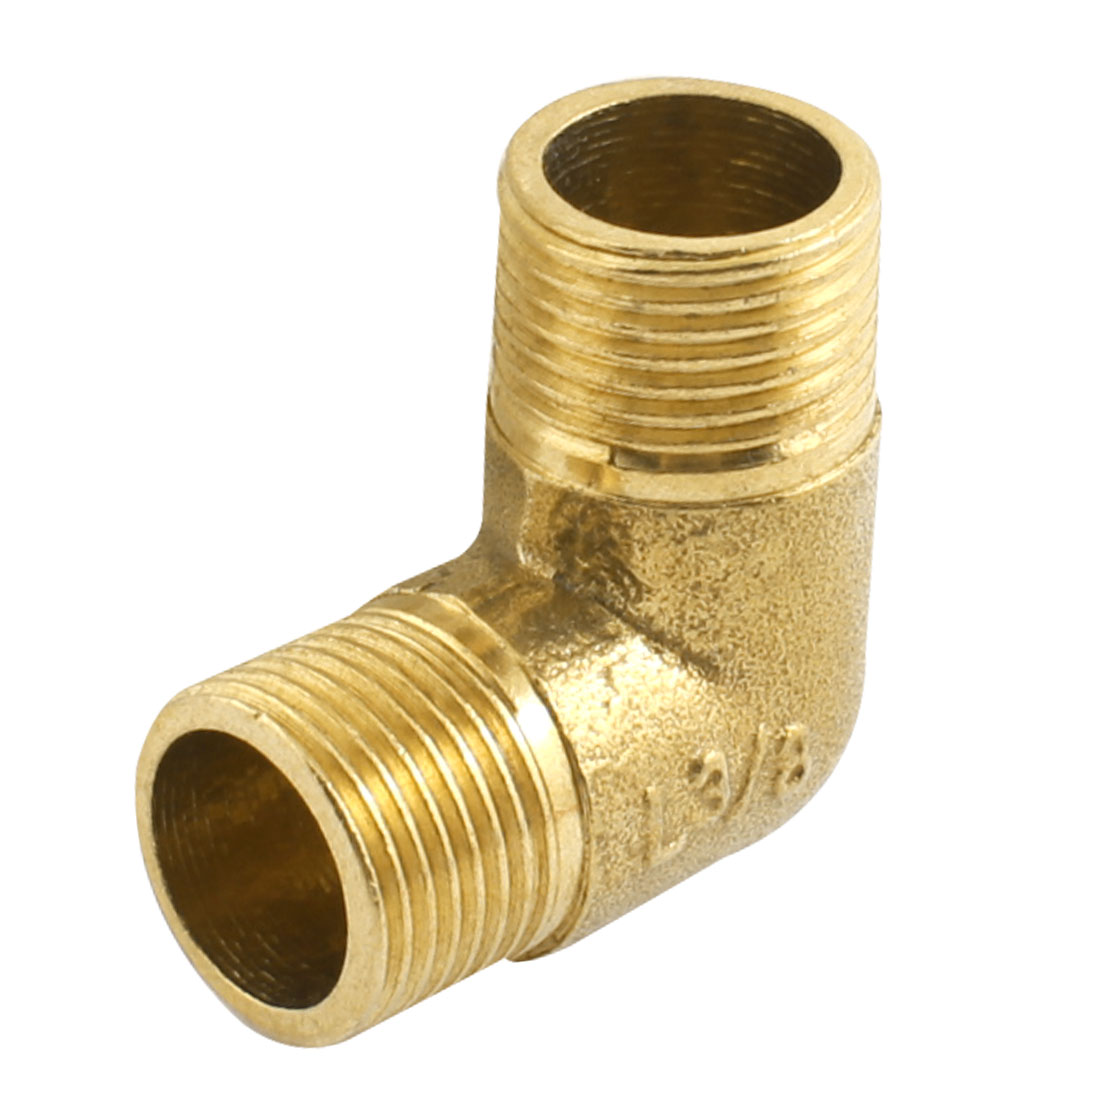 3/8PT to 3/8PT M/M Threaded Brass Right Angle Male Joint Connector for Water Fuel Pipe